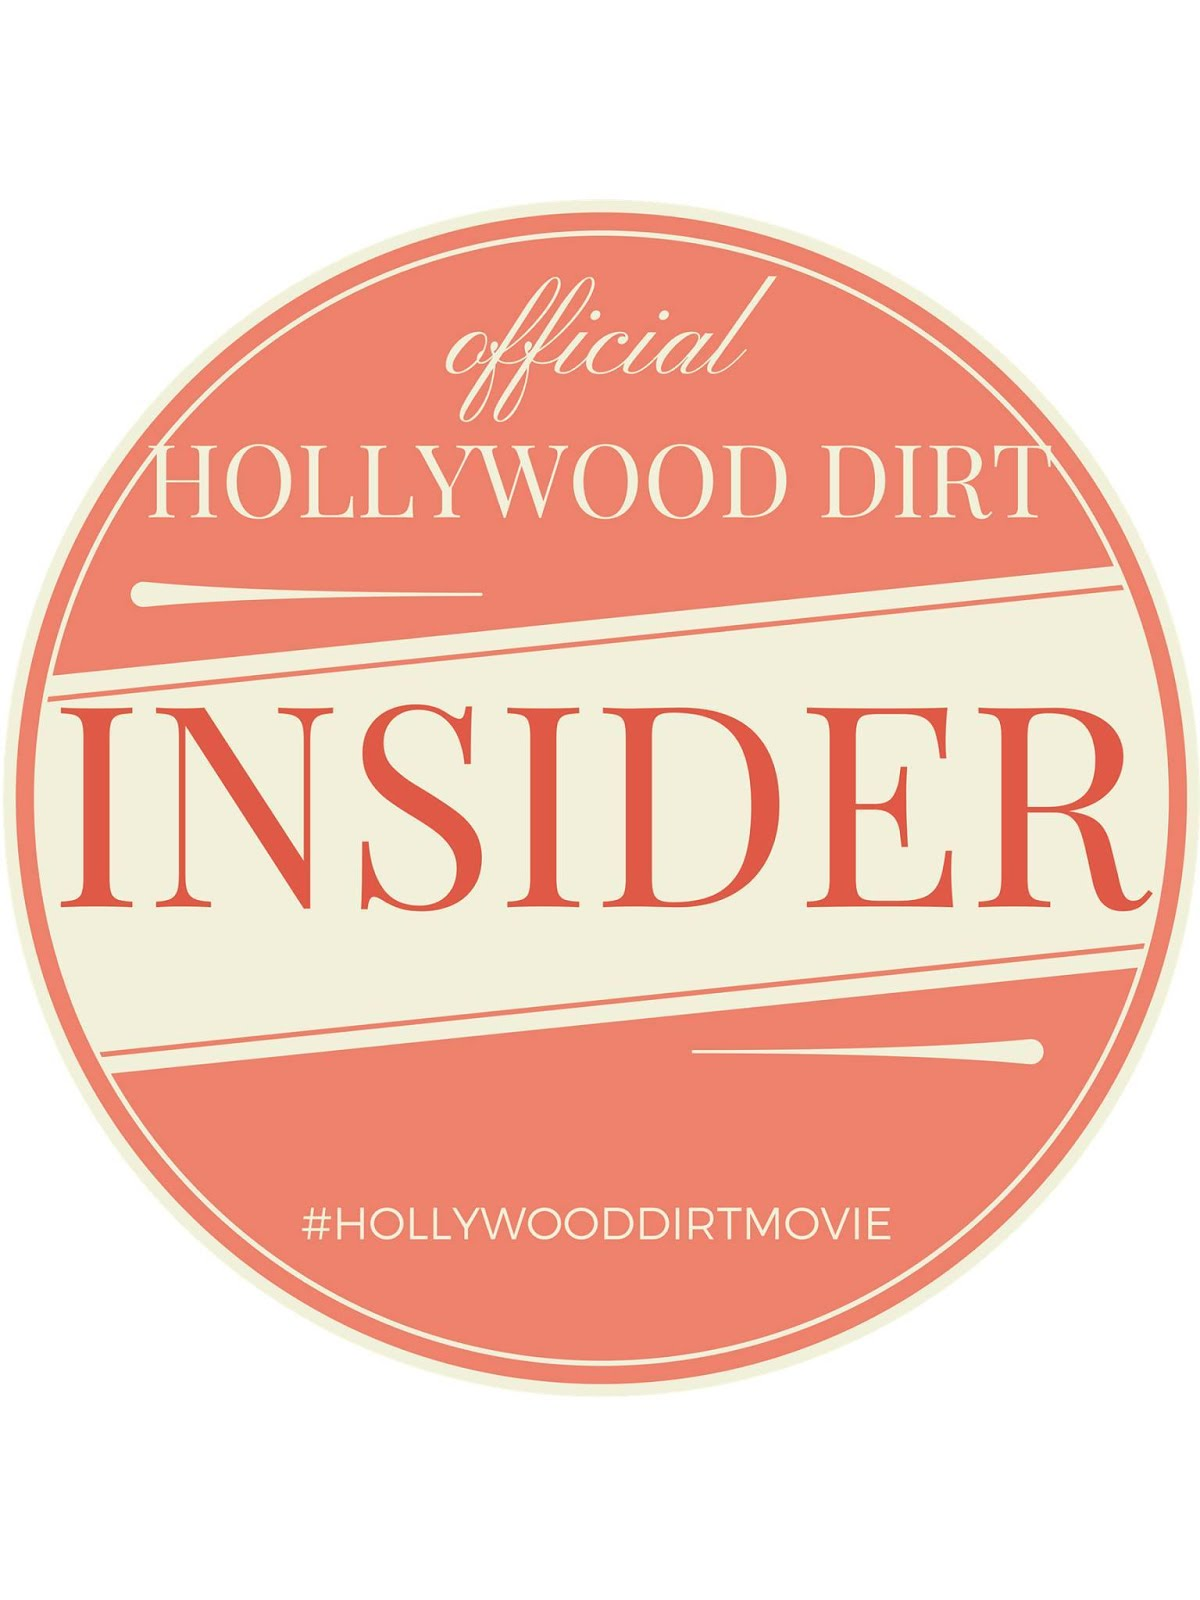 Hollywood Dirt Movie Insider